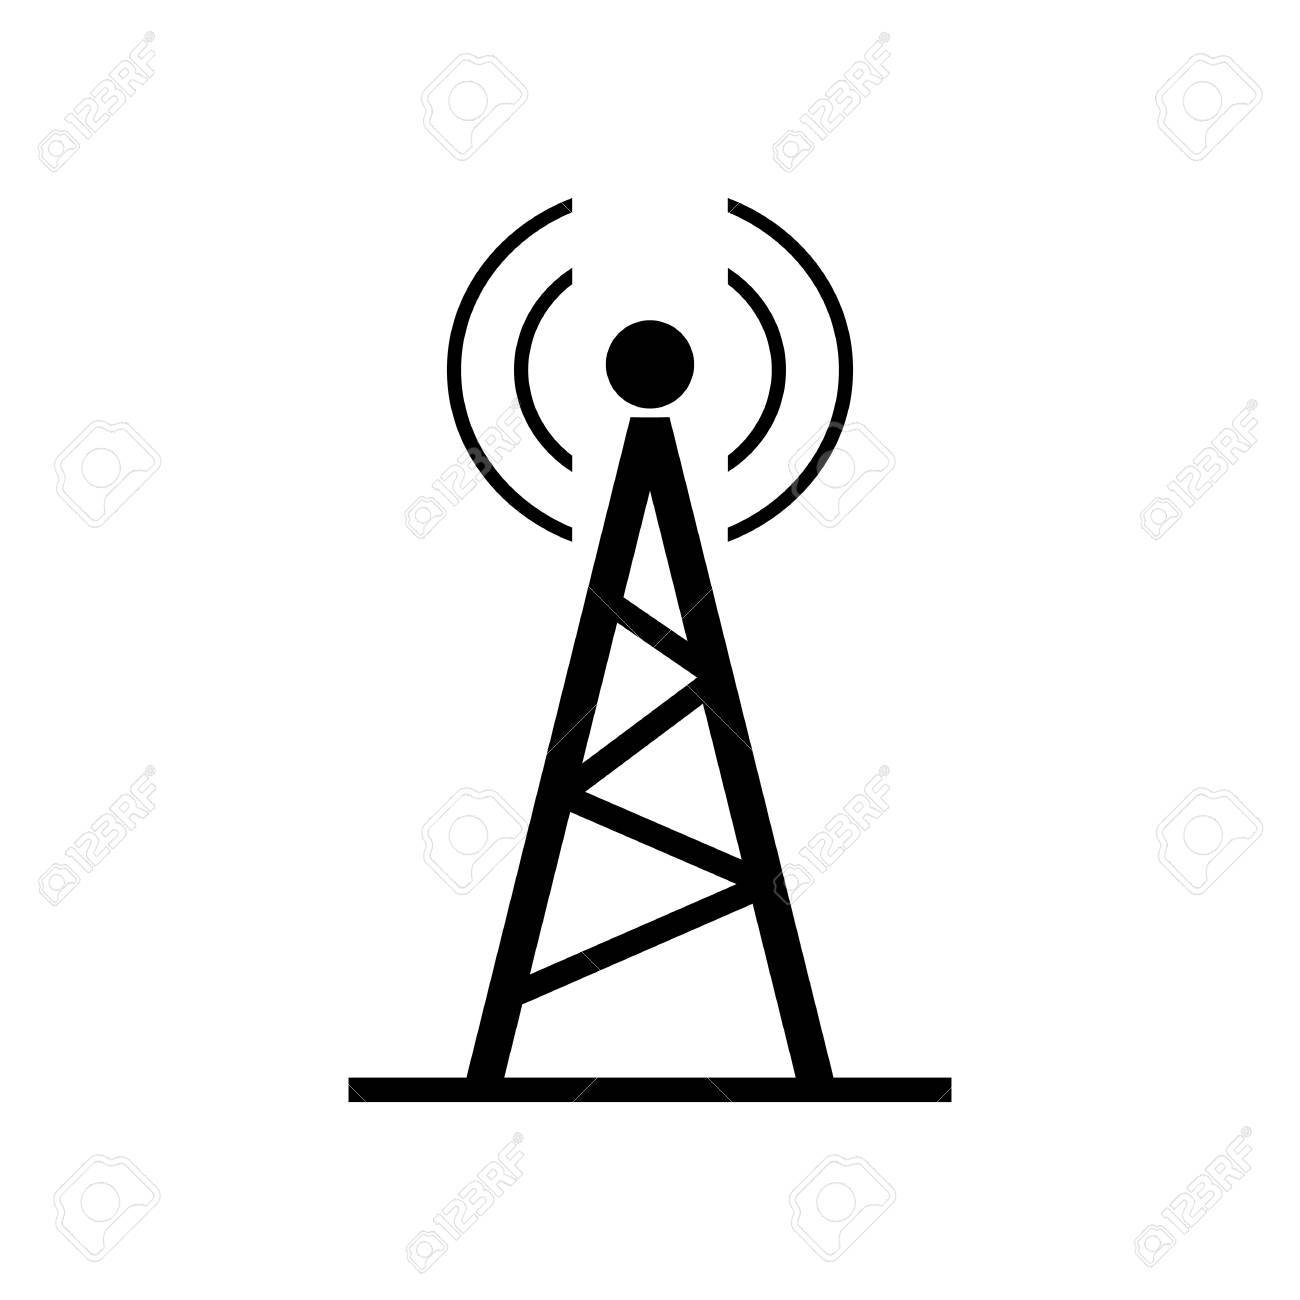 Distribution icon clipart graphic freeuse Broadcasting distribution icon » Clipart Portal graphic freeuse